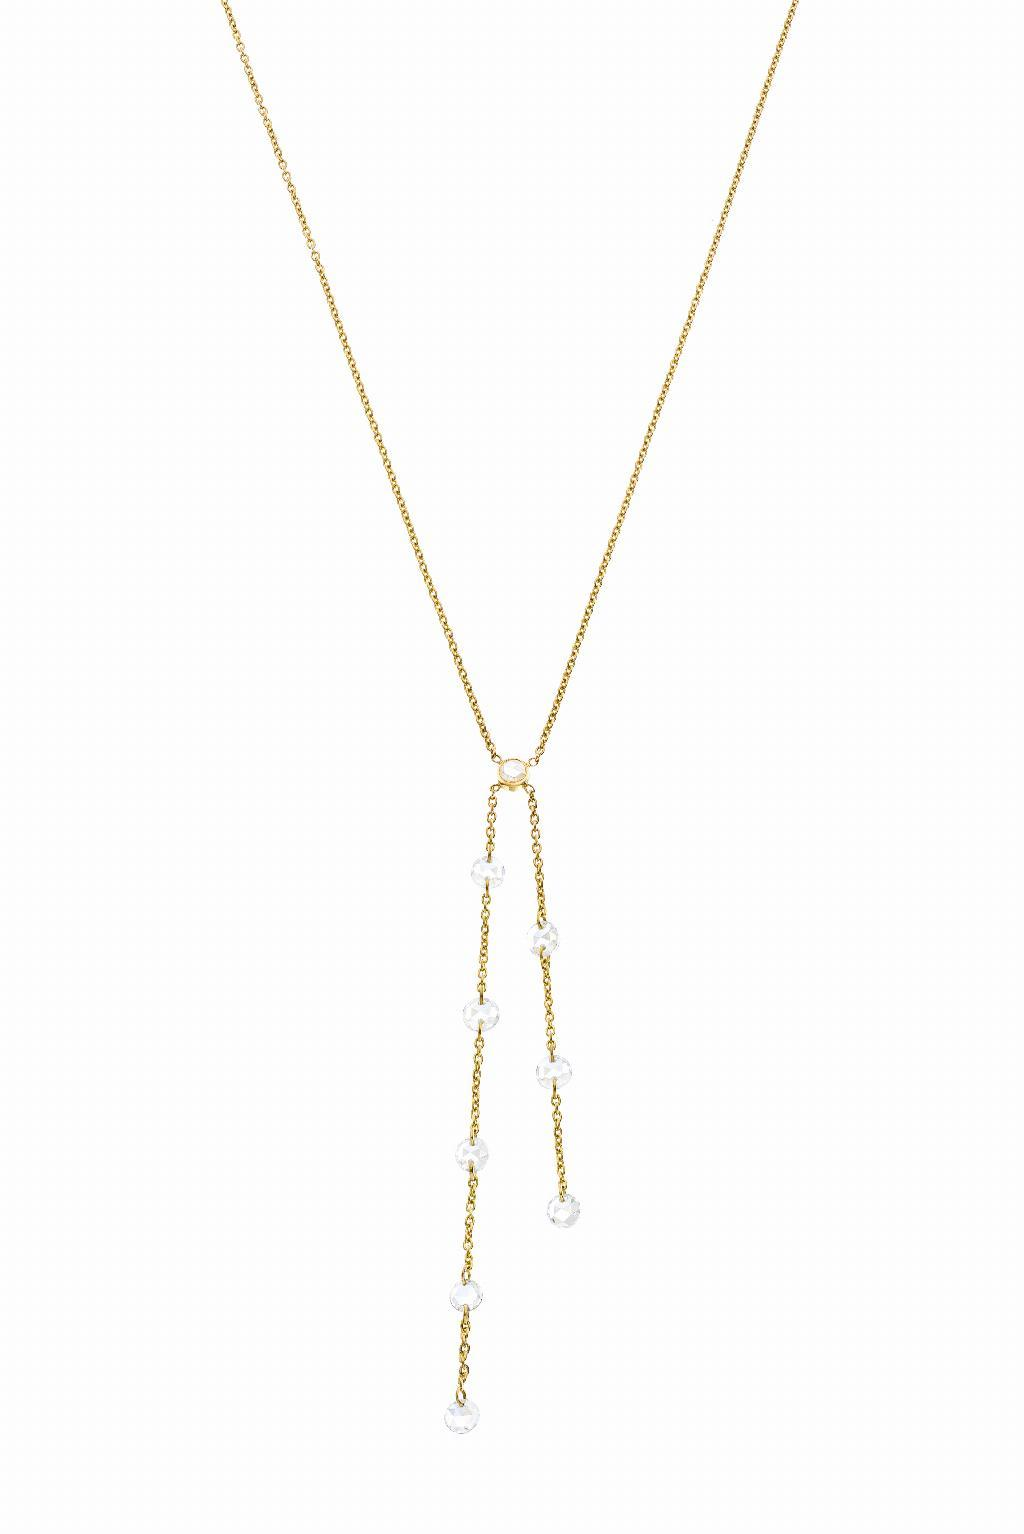 The Cien Double Lariat Necklace